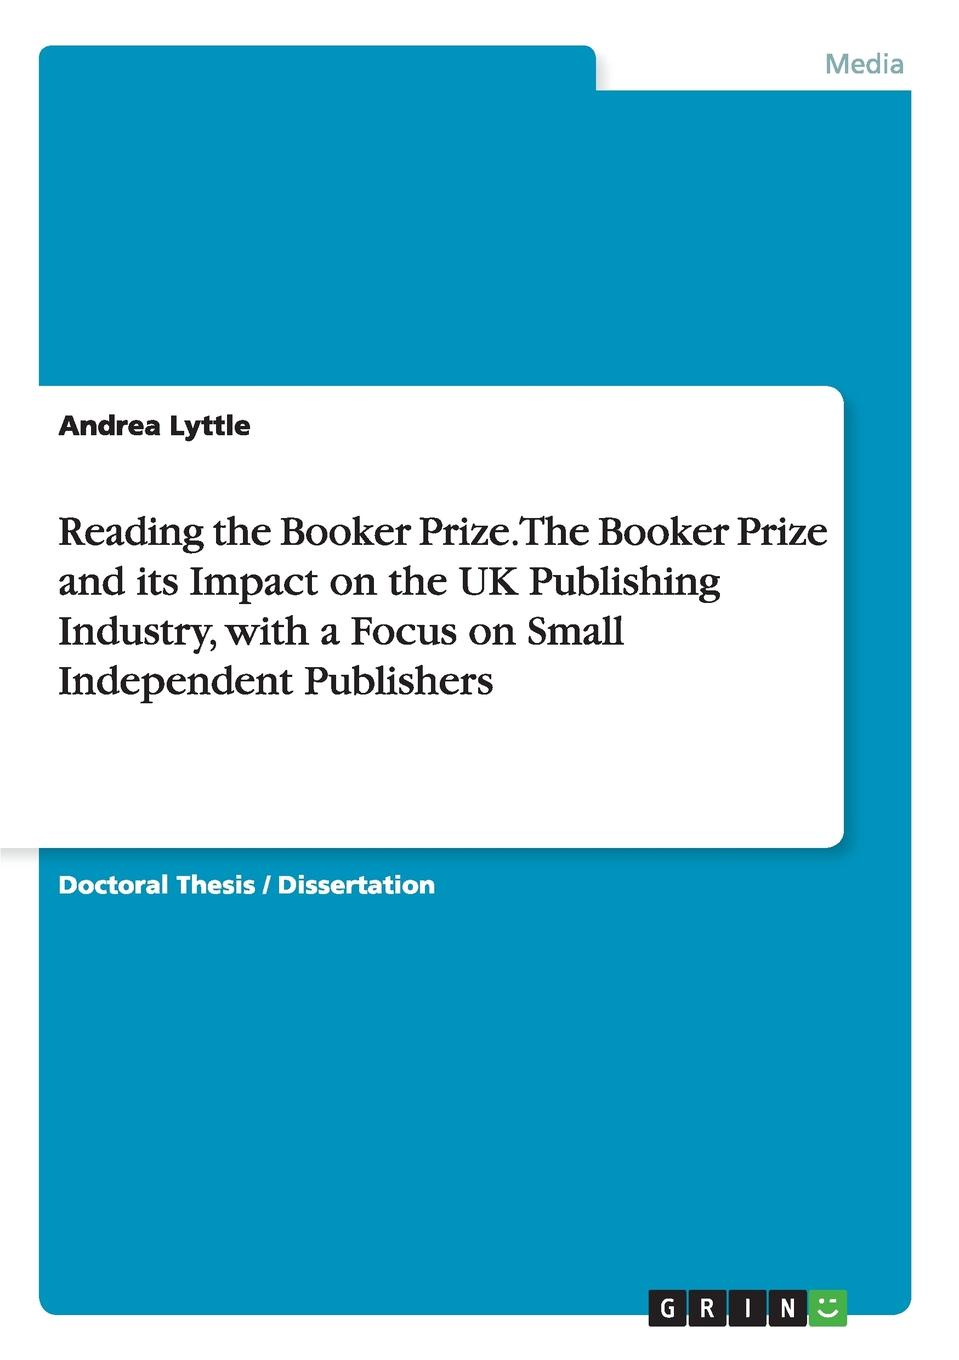 Andrea Lyttle Reading the Booker Prize. The Booker Prize and its Impact on the UK Publishing Industry, with a Focus on Small Independent Publishers morrison gertrude w the girls of central high on the stage or the play that took the prize